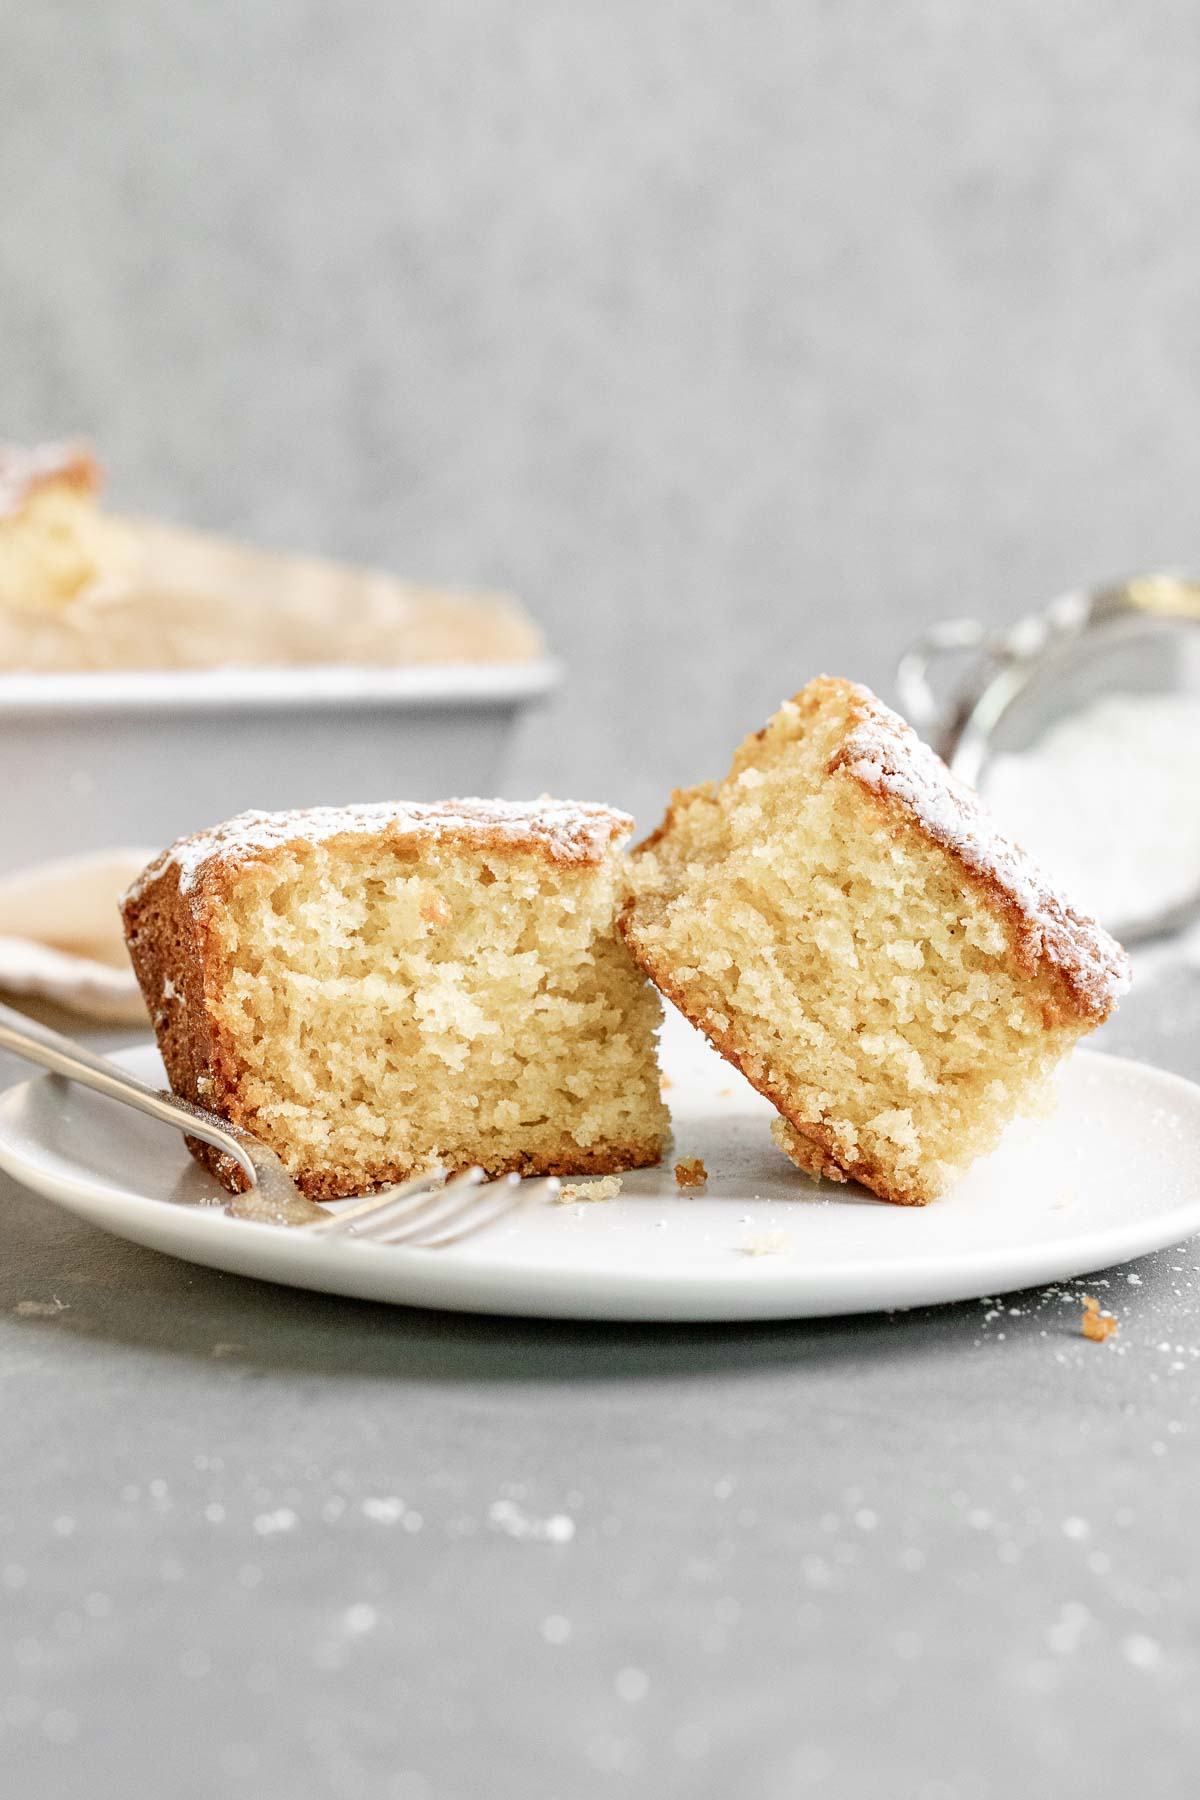 Butter Cake dusted with powdered sugar sliced on plate with fork